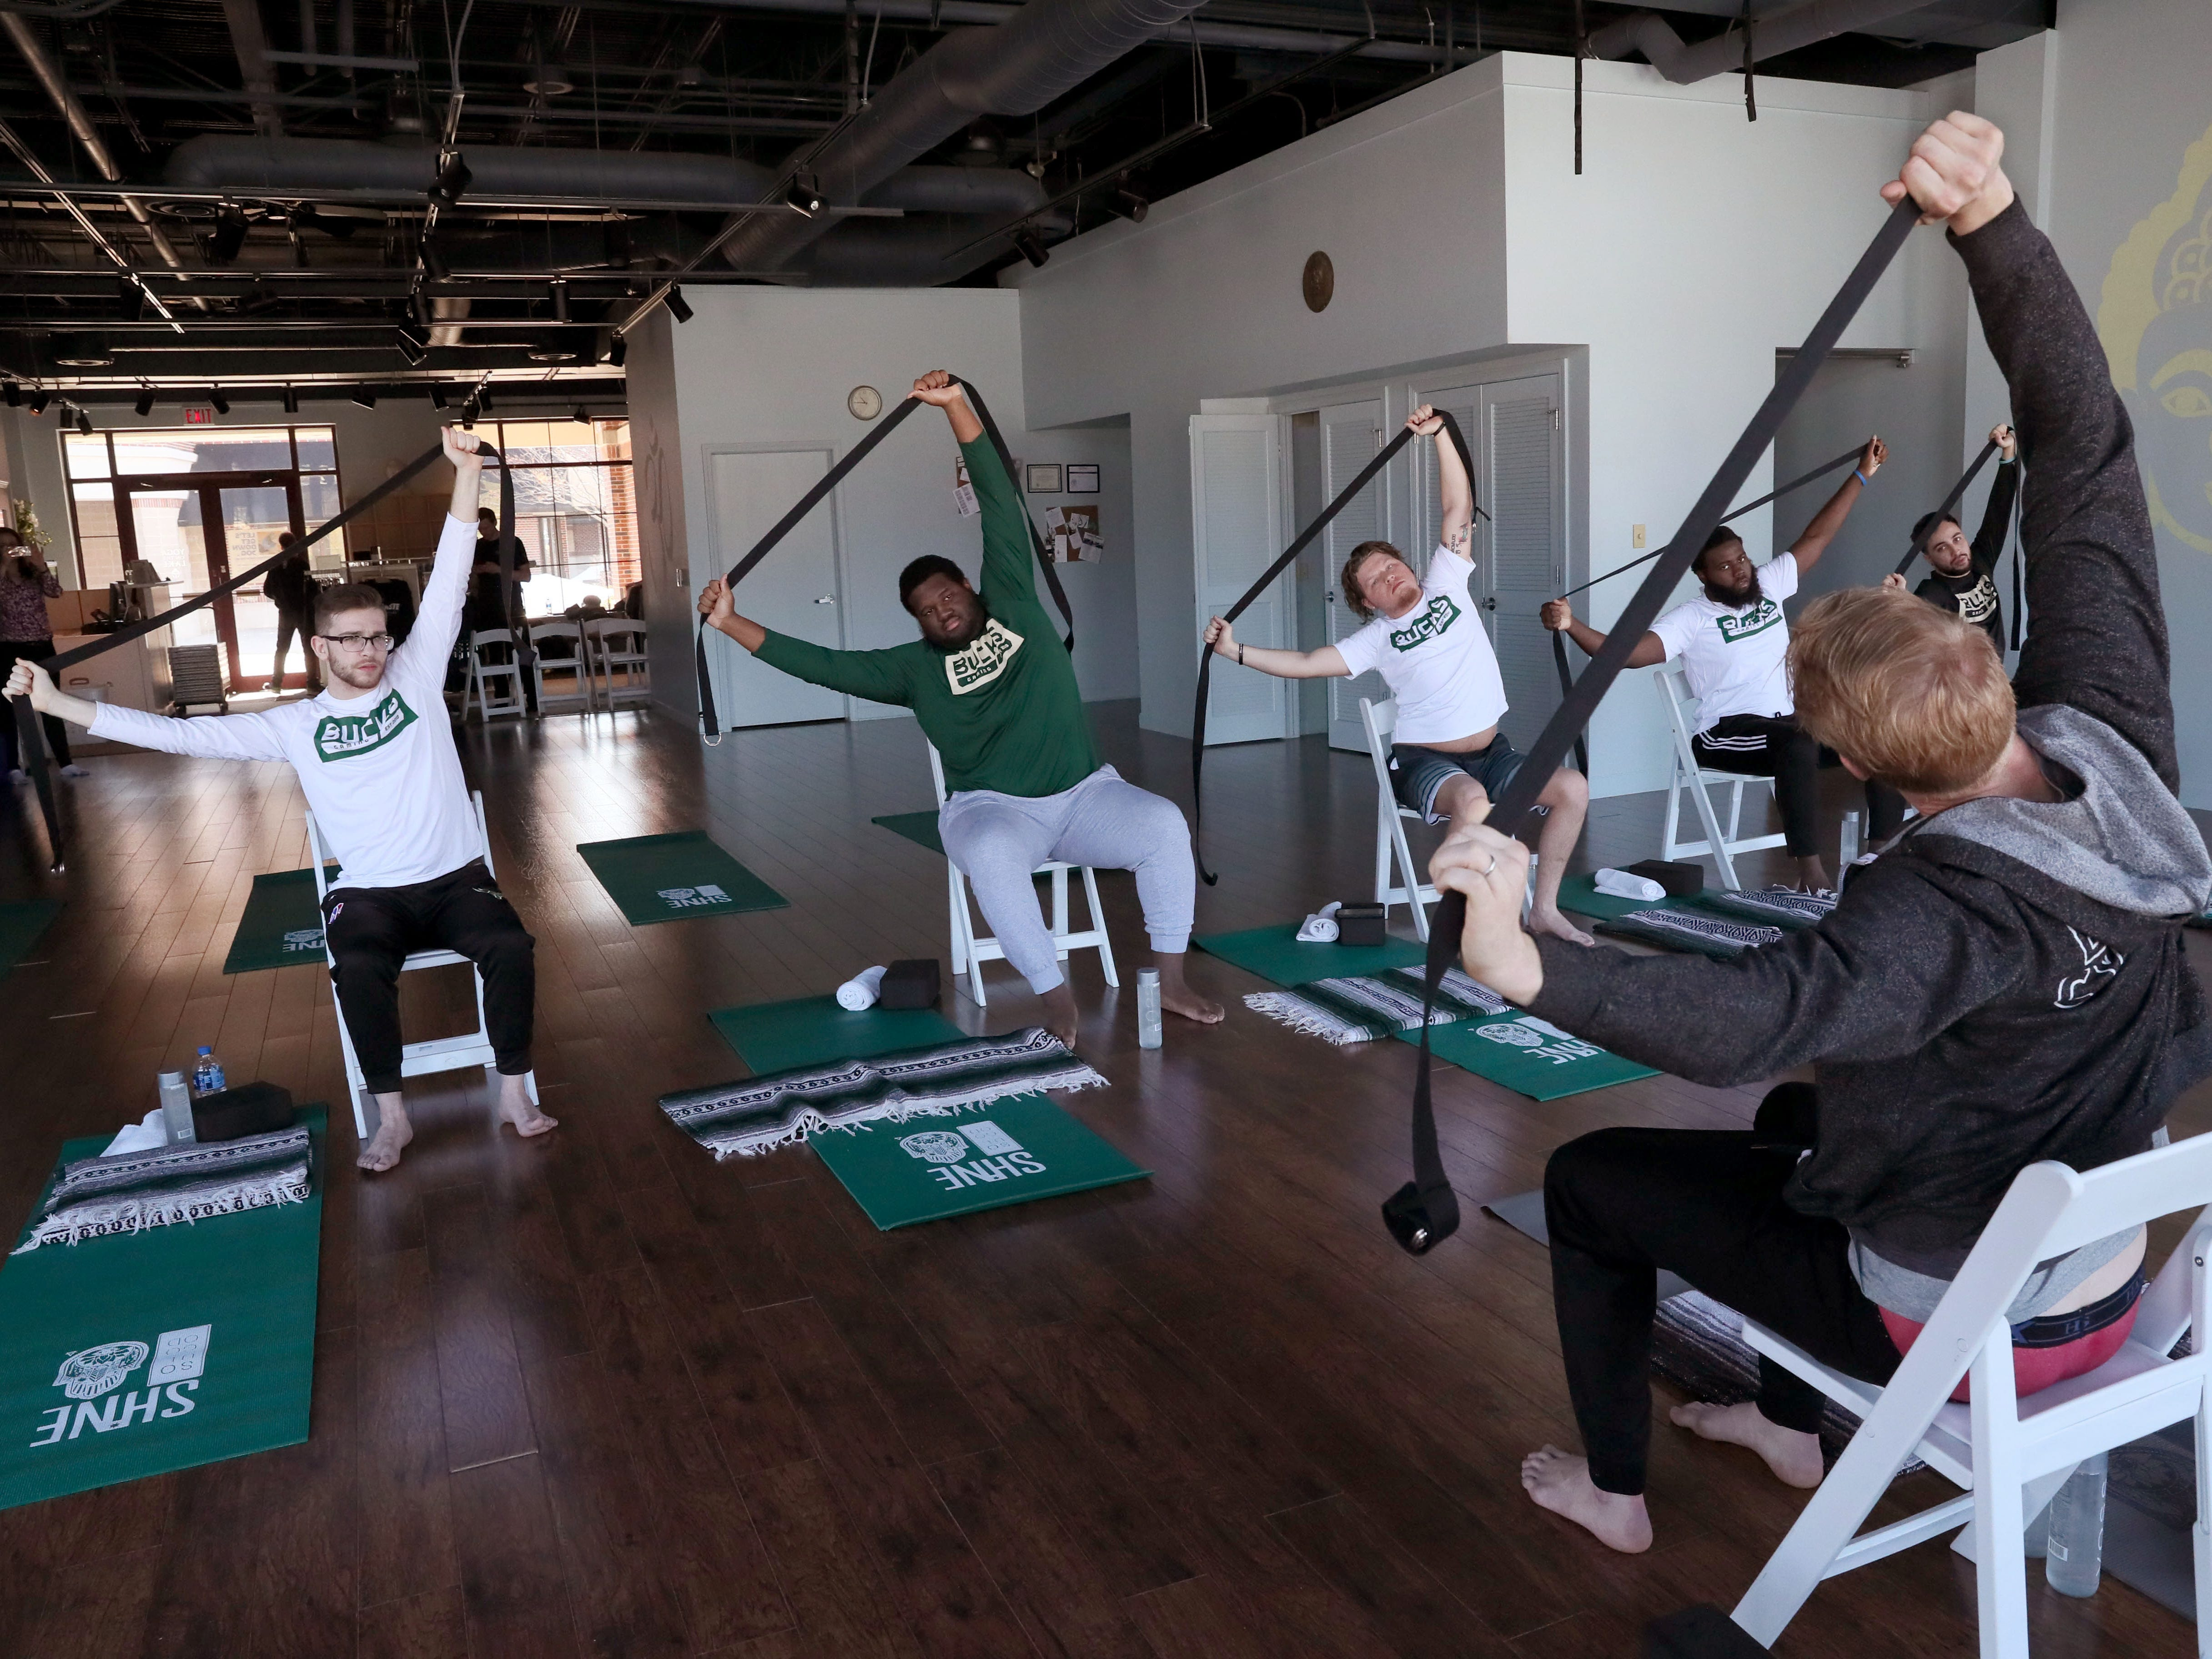 """Greg Cartwright (front) uses a nylon strap to stretch as he leads team members Stephen Lay (from left), Jovan Tenner, Robert """"Brandon"""" Harter, Aaron Rookwood and Chad Fodderie. The stretches will help the team loosen muscles that get tight because they spend so much time seated."""